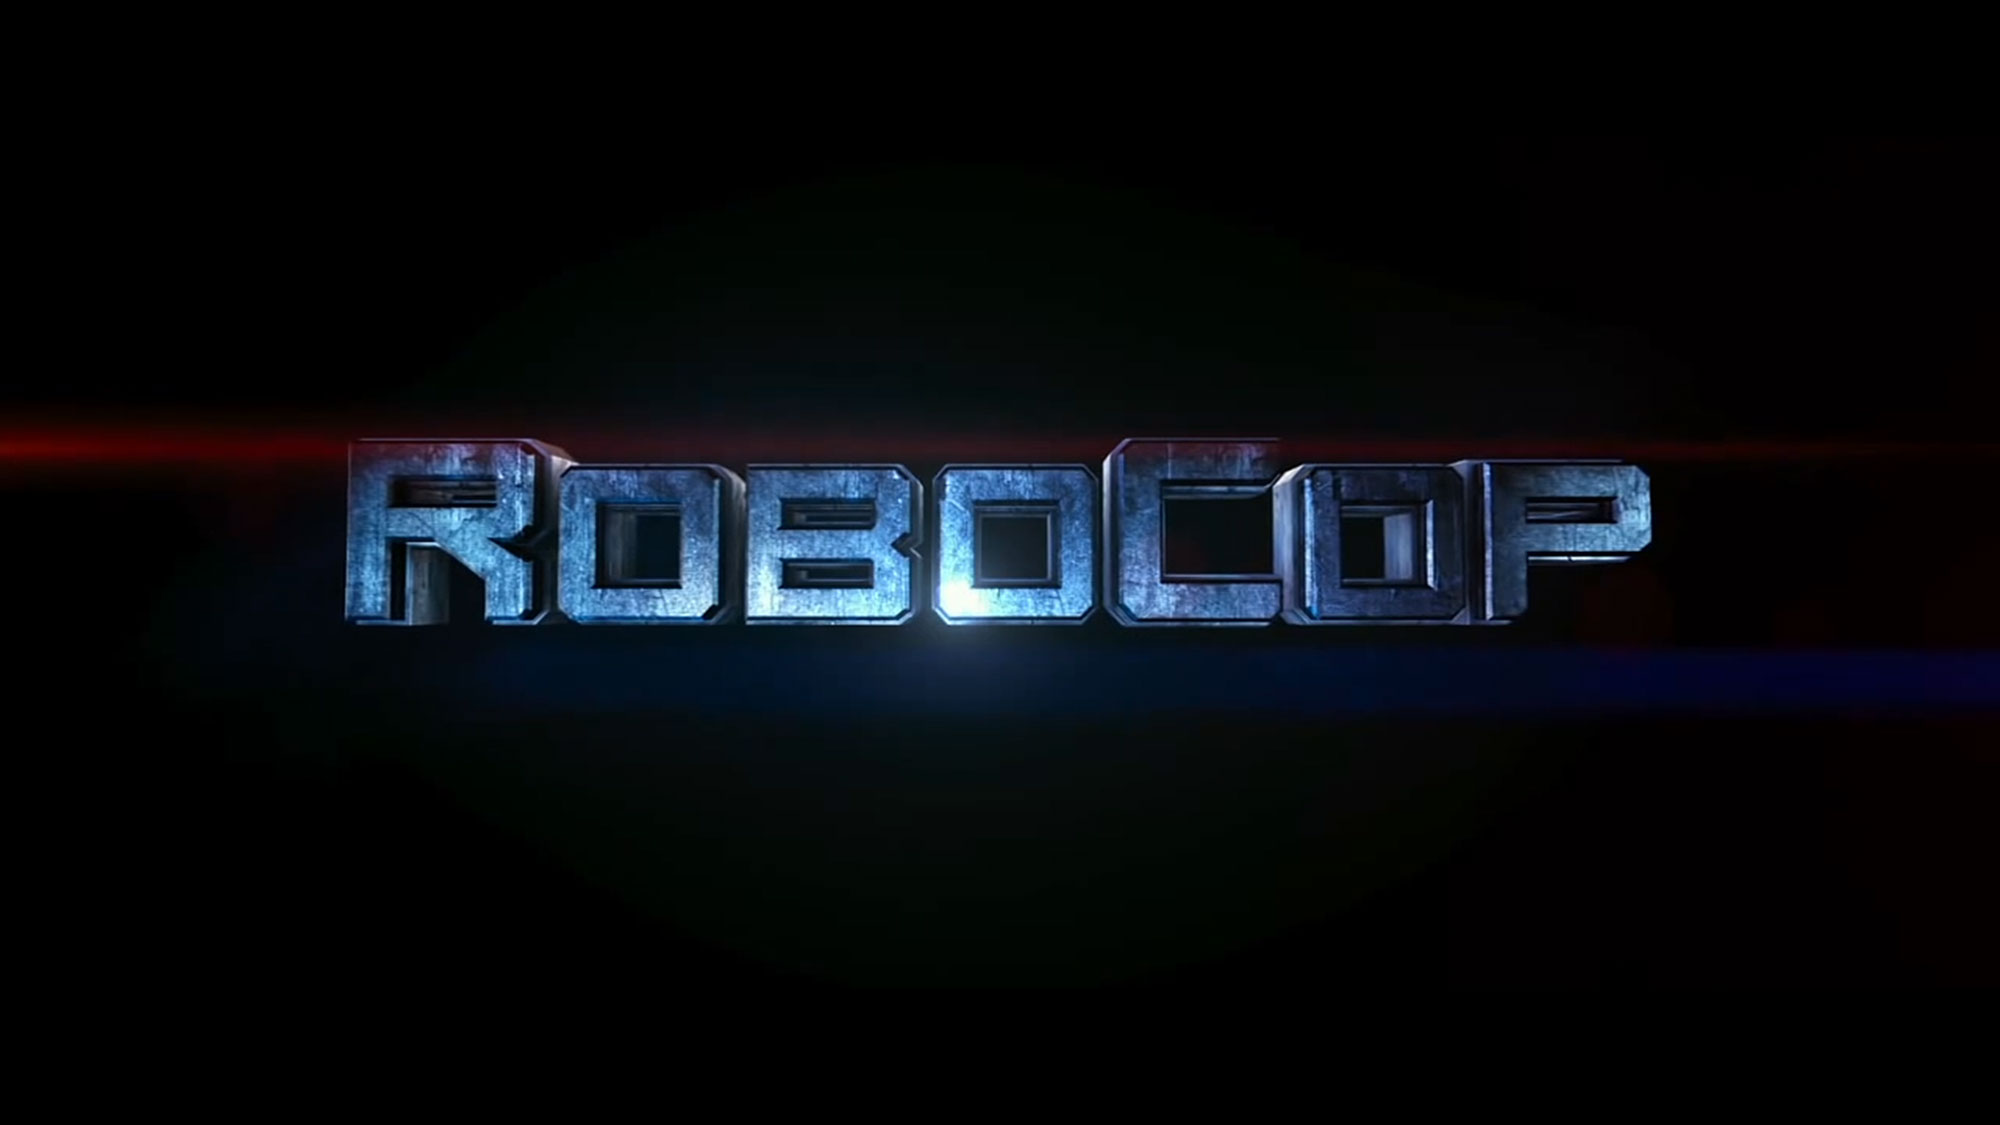 The Smurfs 2 3d Live Wallpaper Robocop 2014 Movie Wallpapers Hd Amp Facebook Timeline Covers